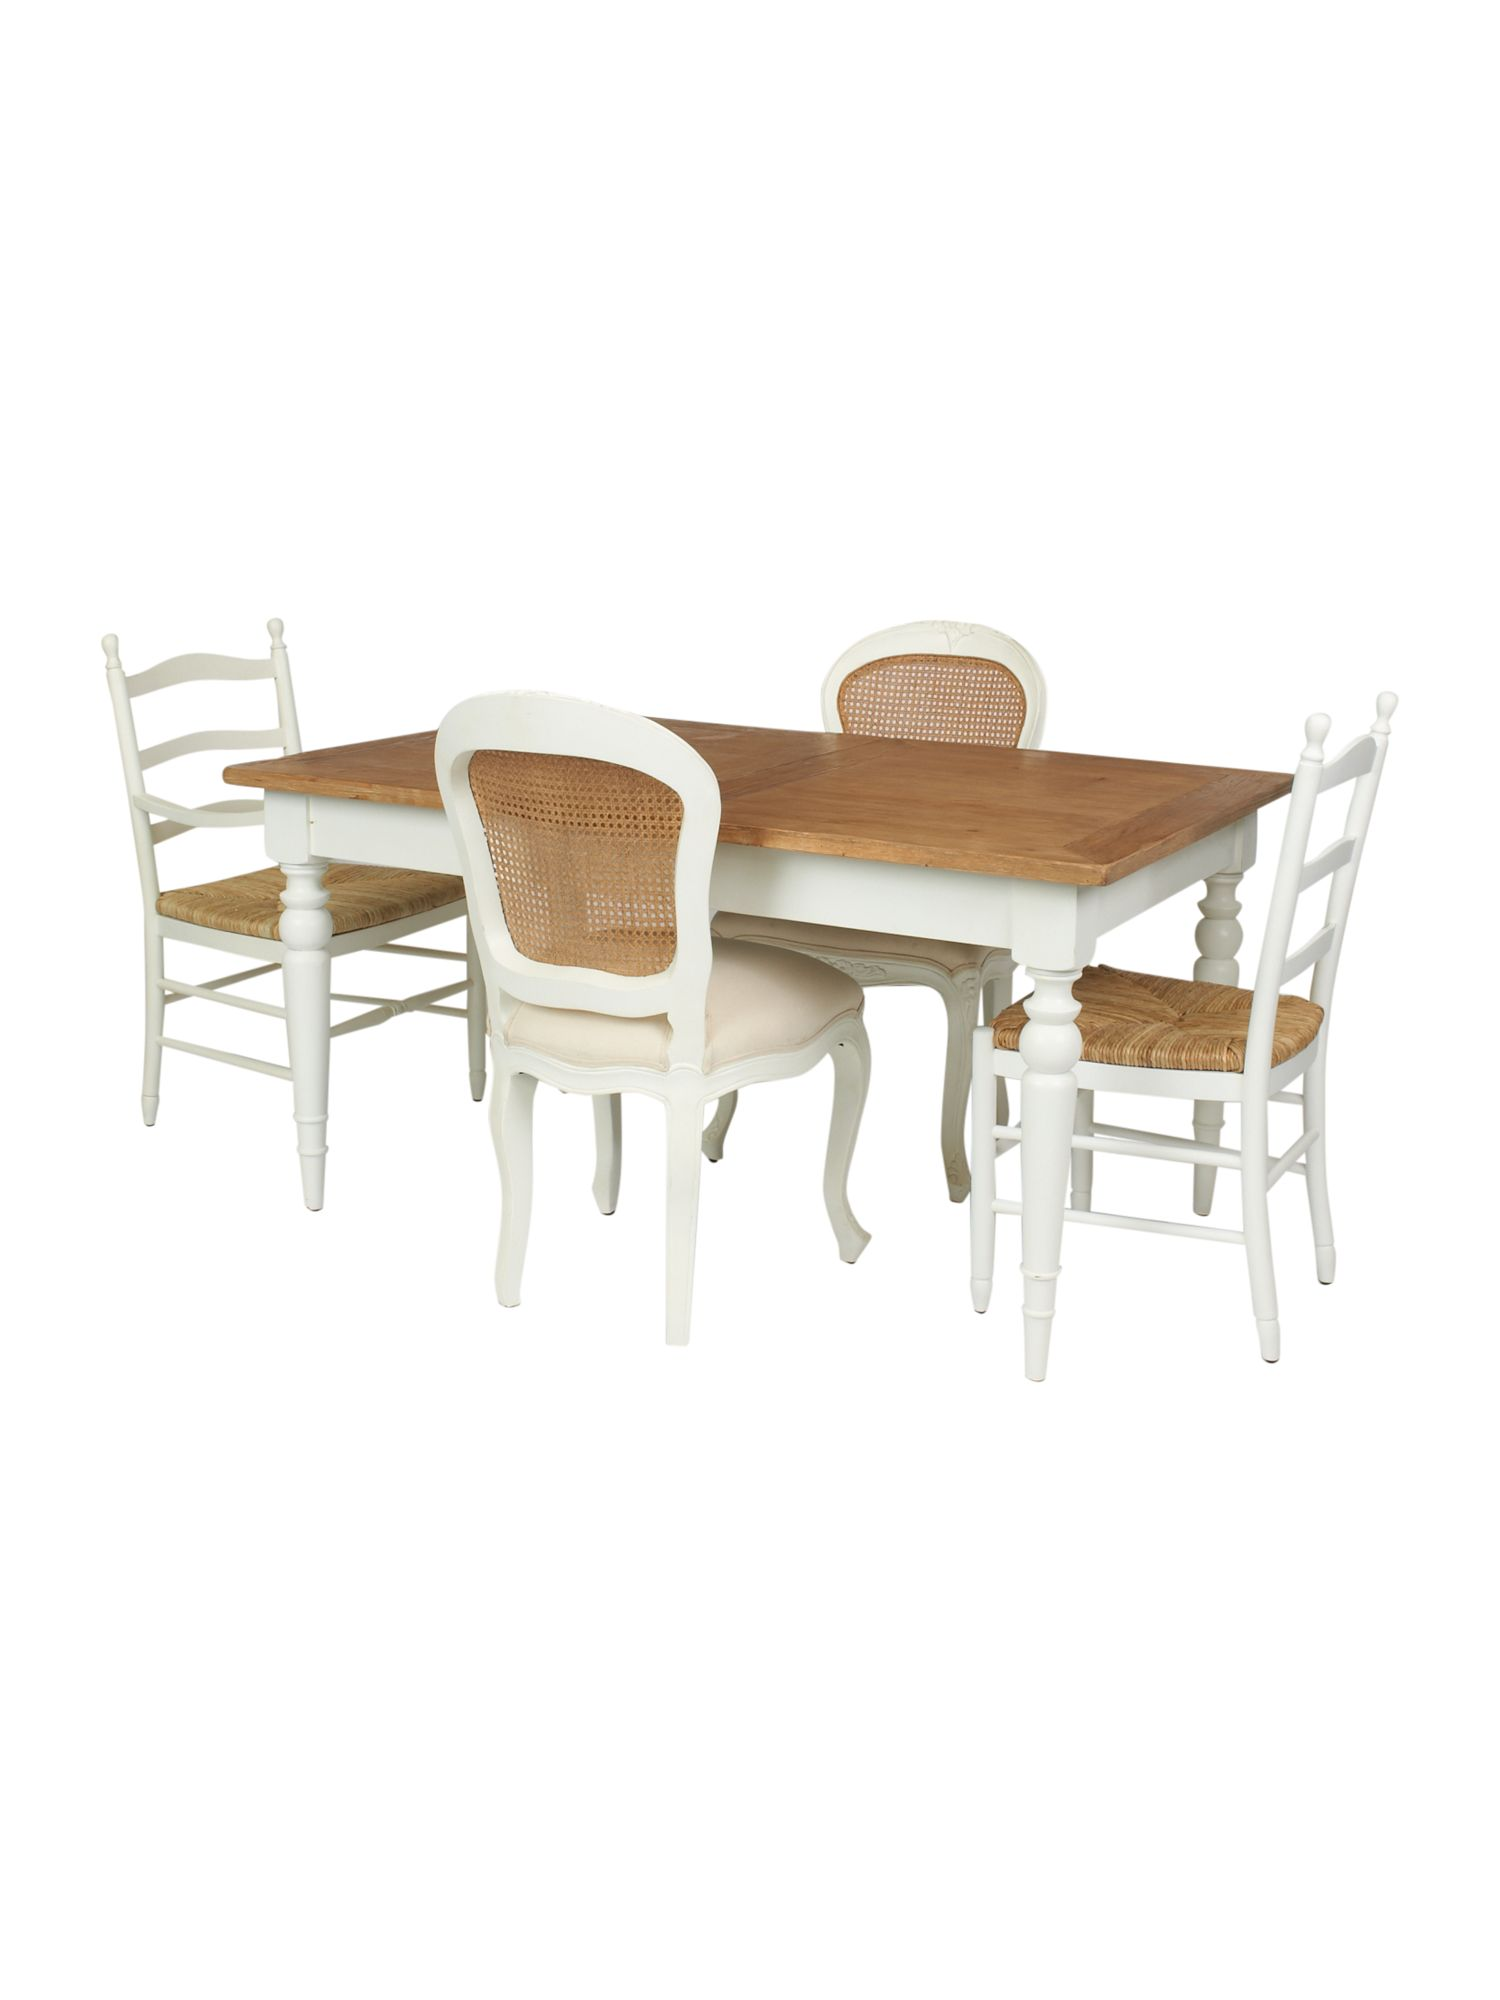 Willow dining room furniture range